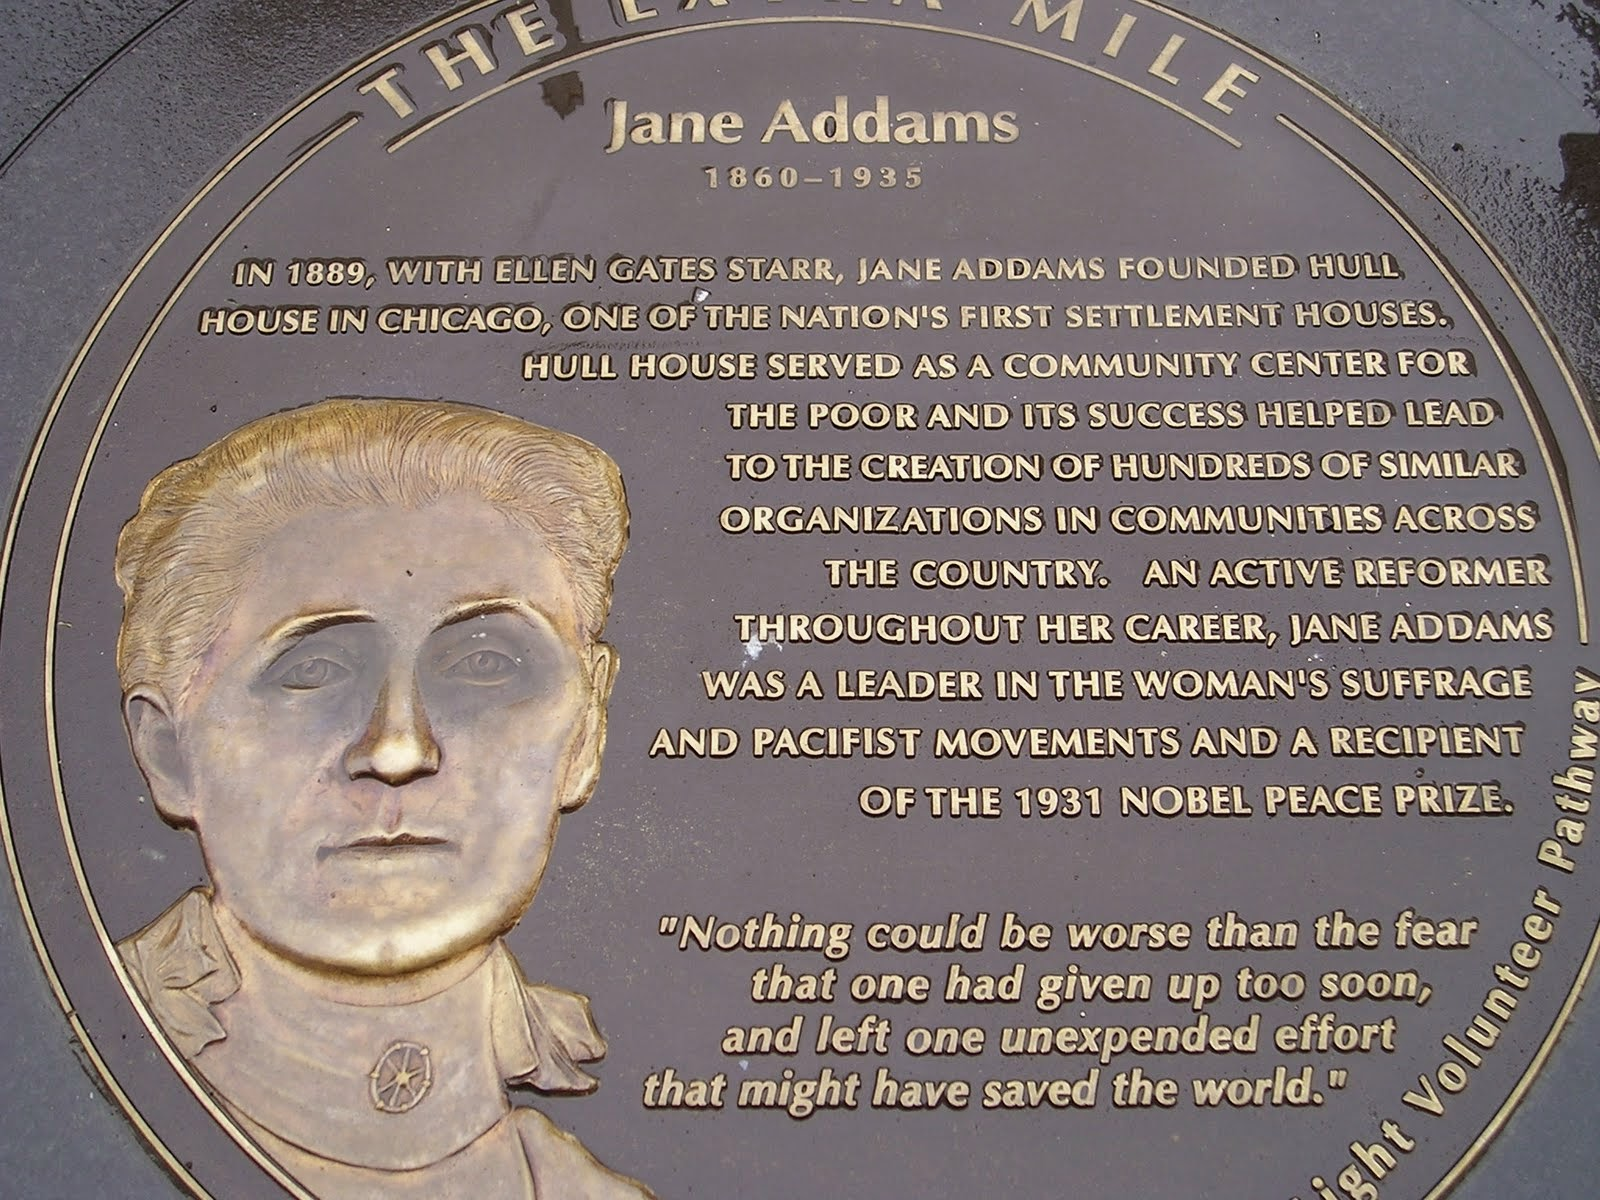 clancy tucker's blog: 25 october 2014 - jane addams - social reformer